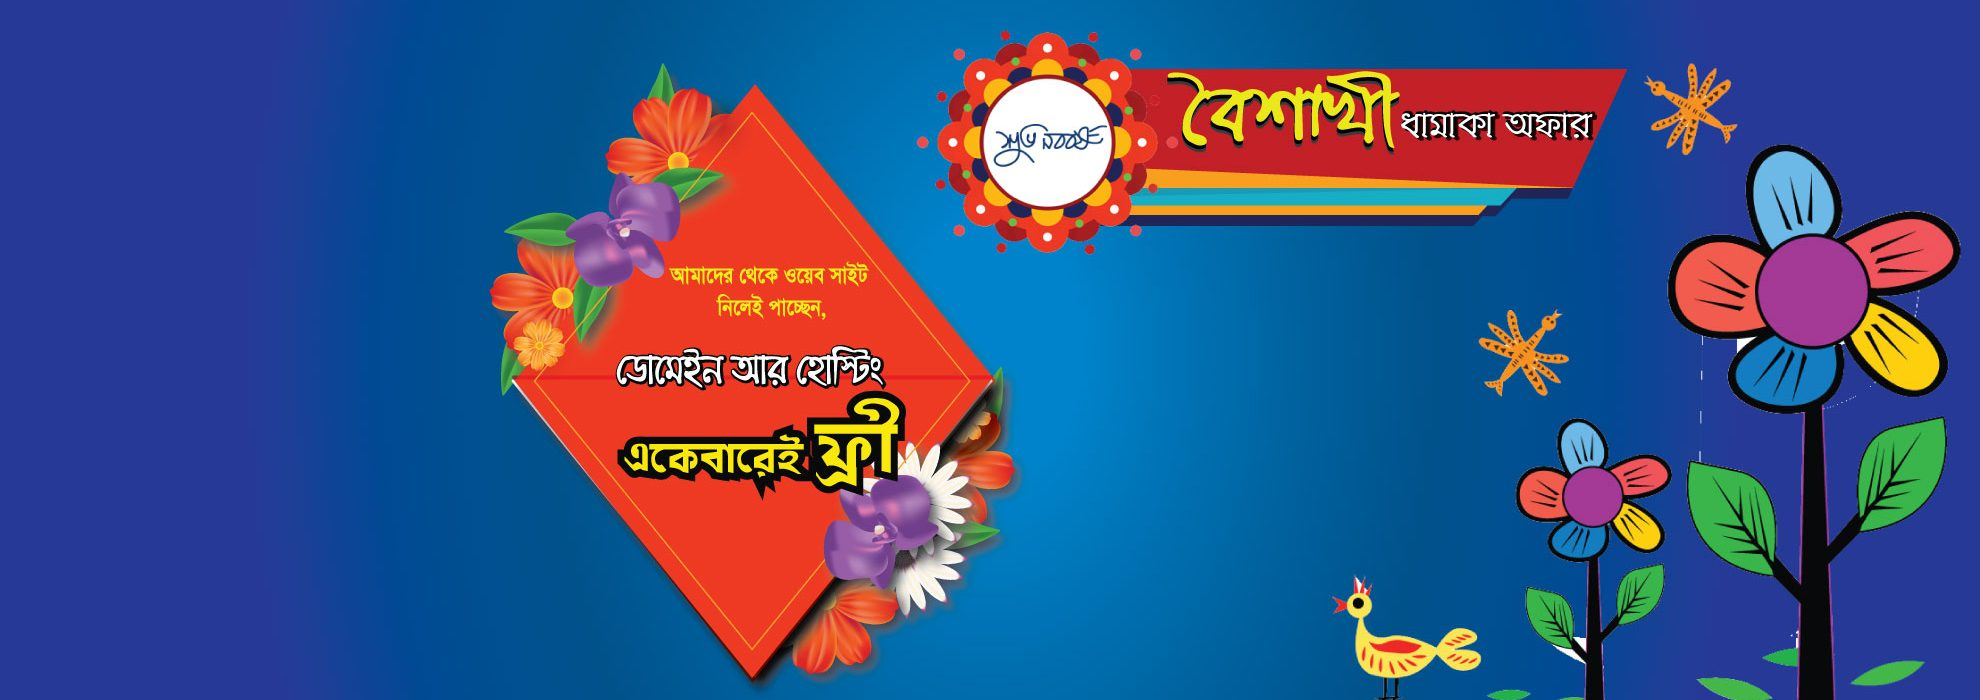 Bangla New Year Offer